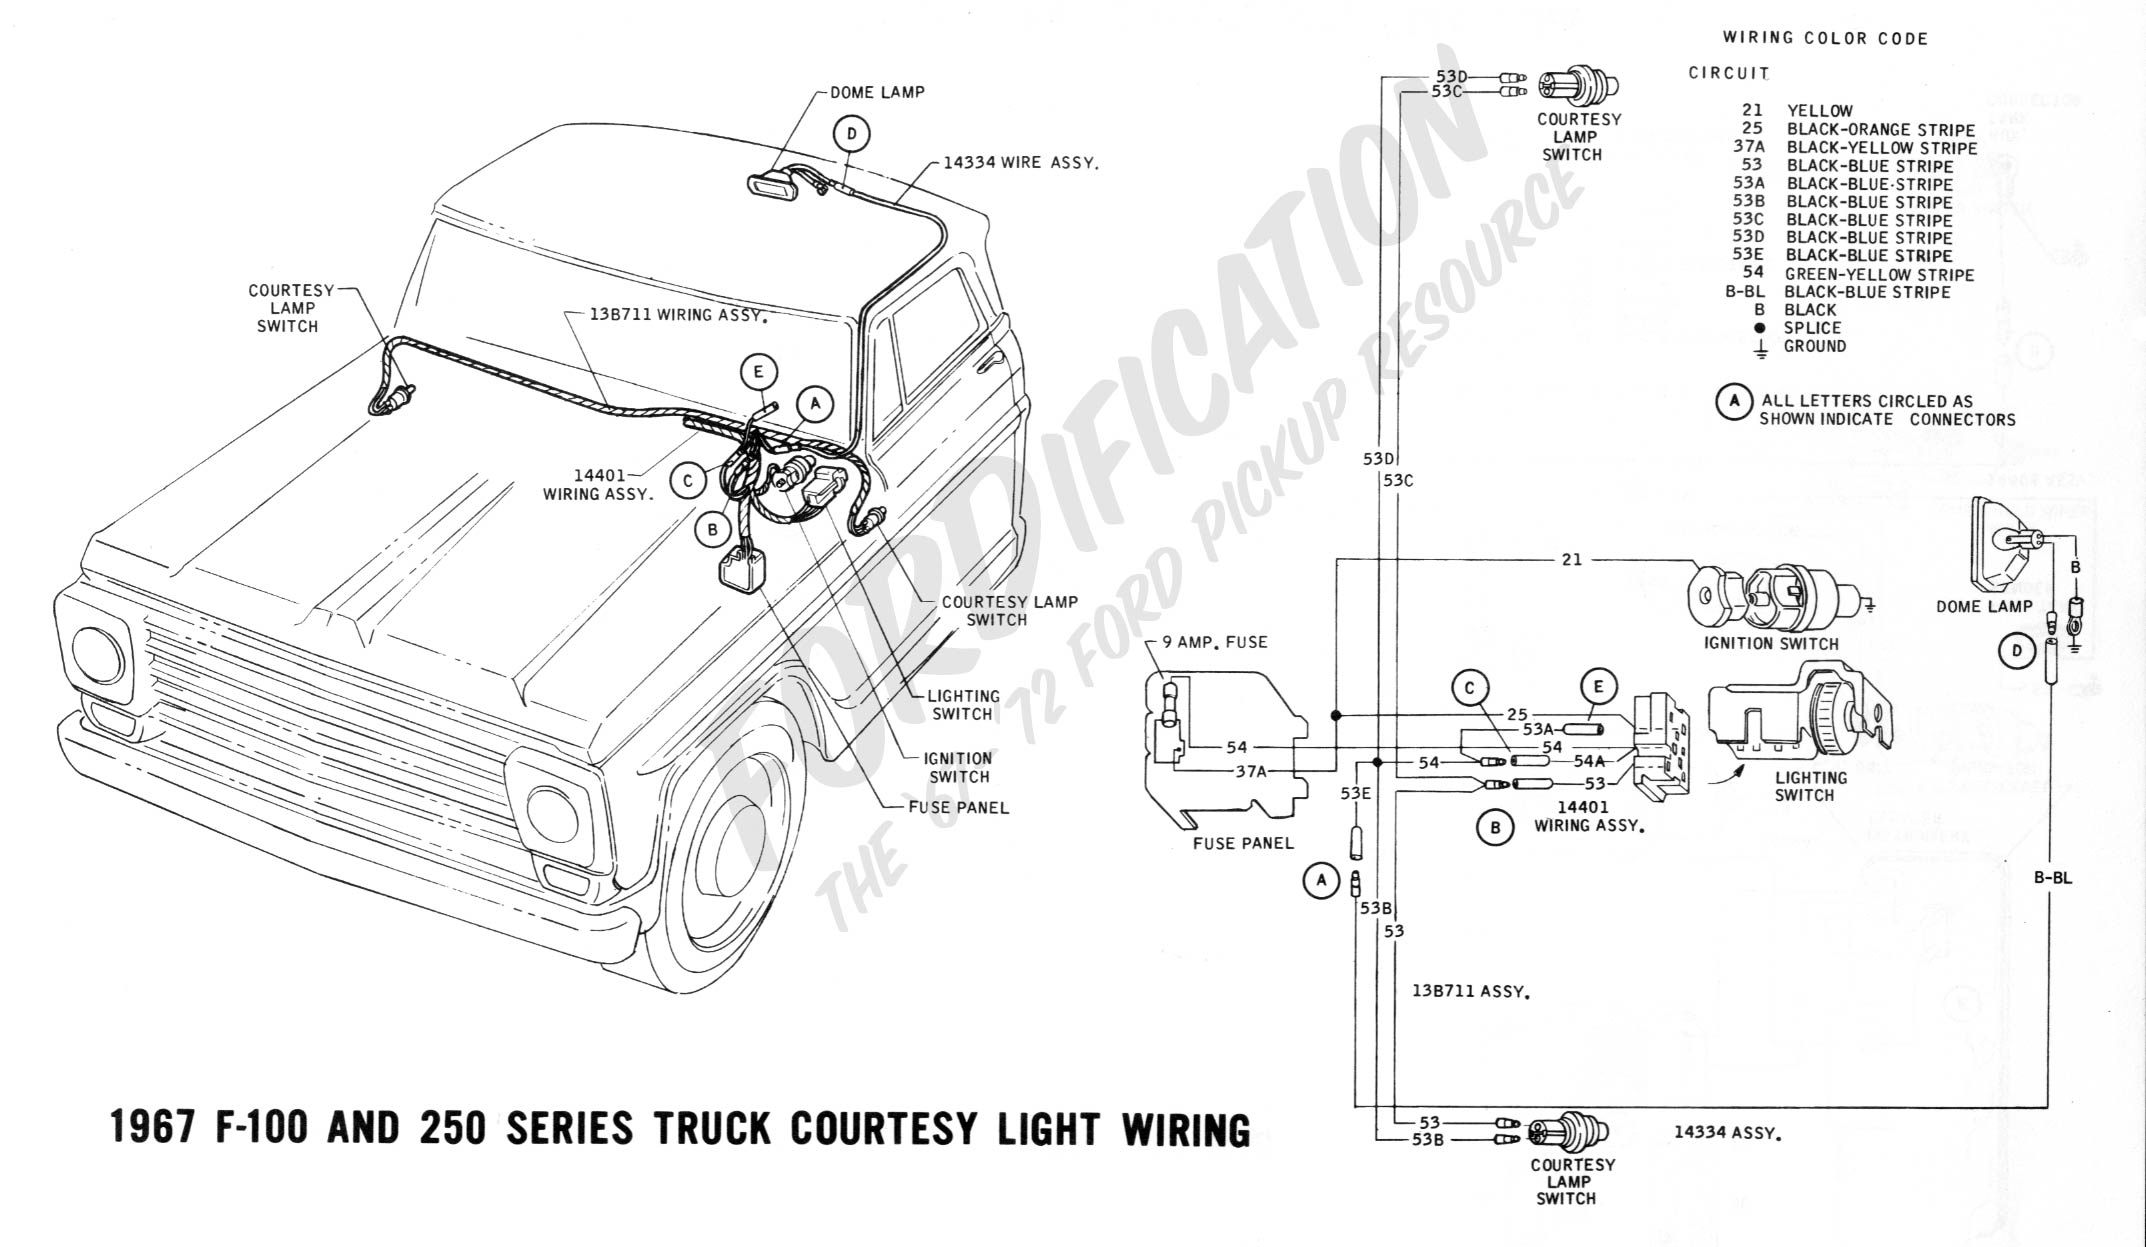 wiring 1967courtesylight wiring in ignition switch in 1966 f100 ford truck enthusiasts forums 1969 mustang ignition switch wiring diagram at webbmarketing.co